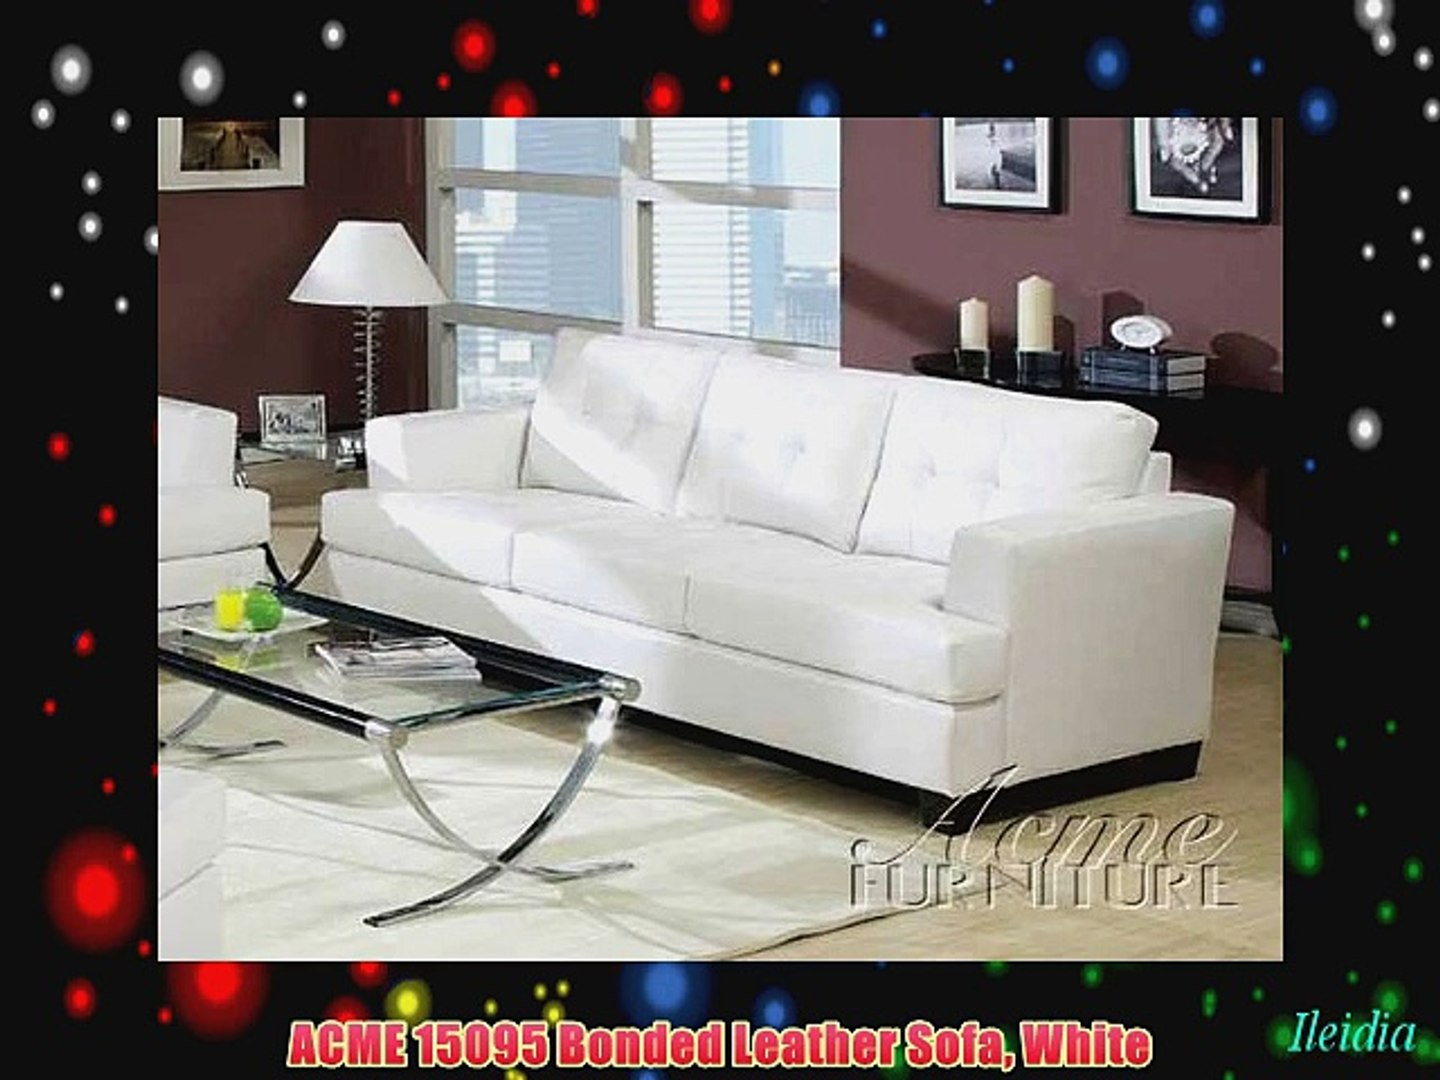 Fine Acme 15095 Bonded Leather Sofa White Pdpeps Interior Chair Design Pdpepsorg